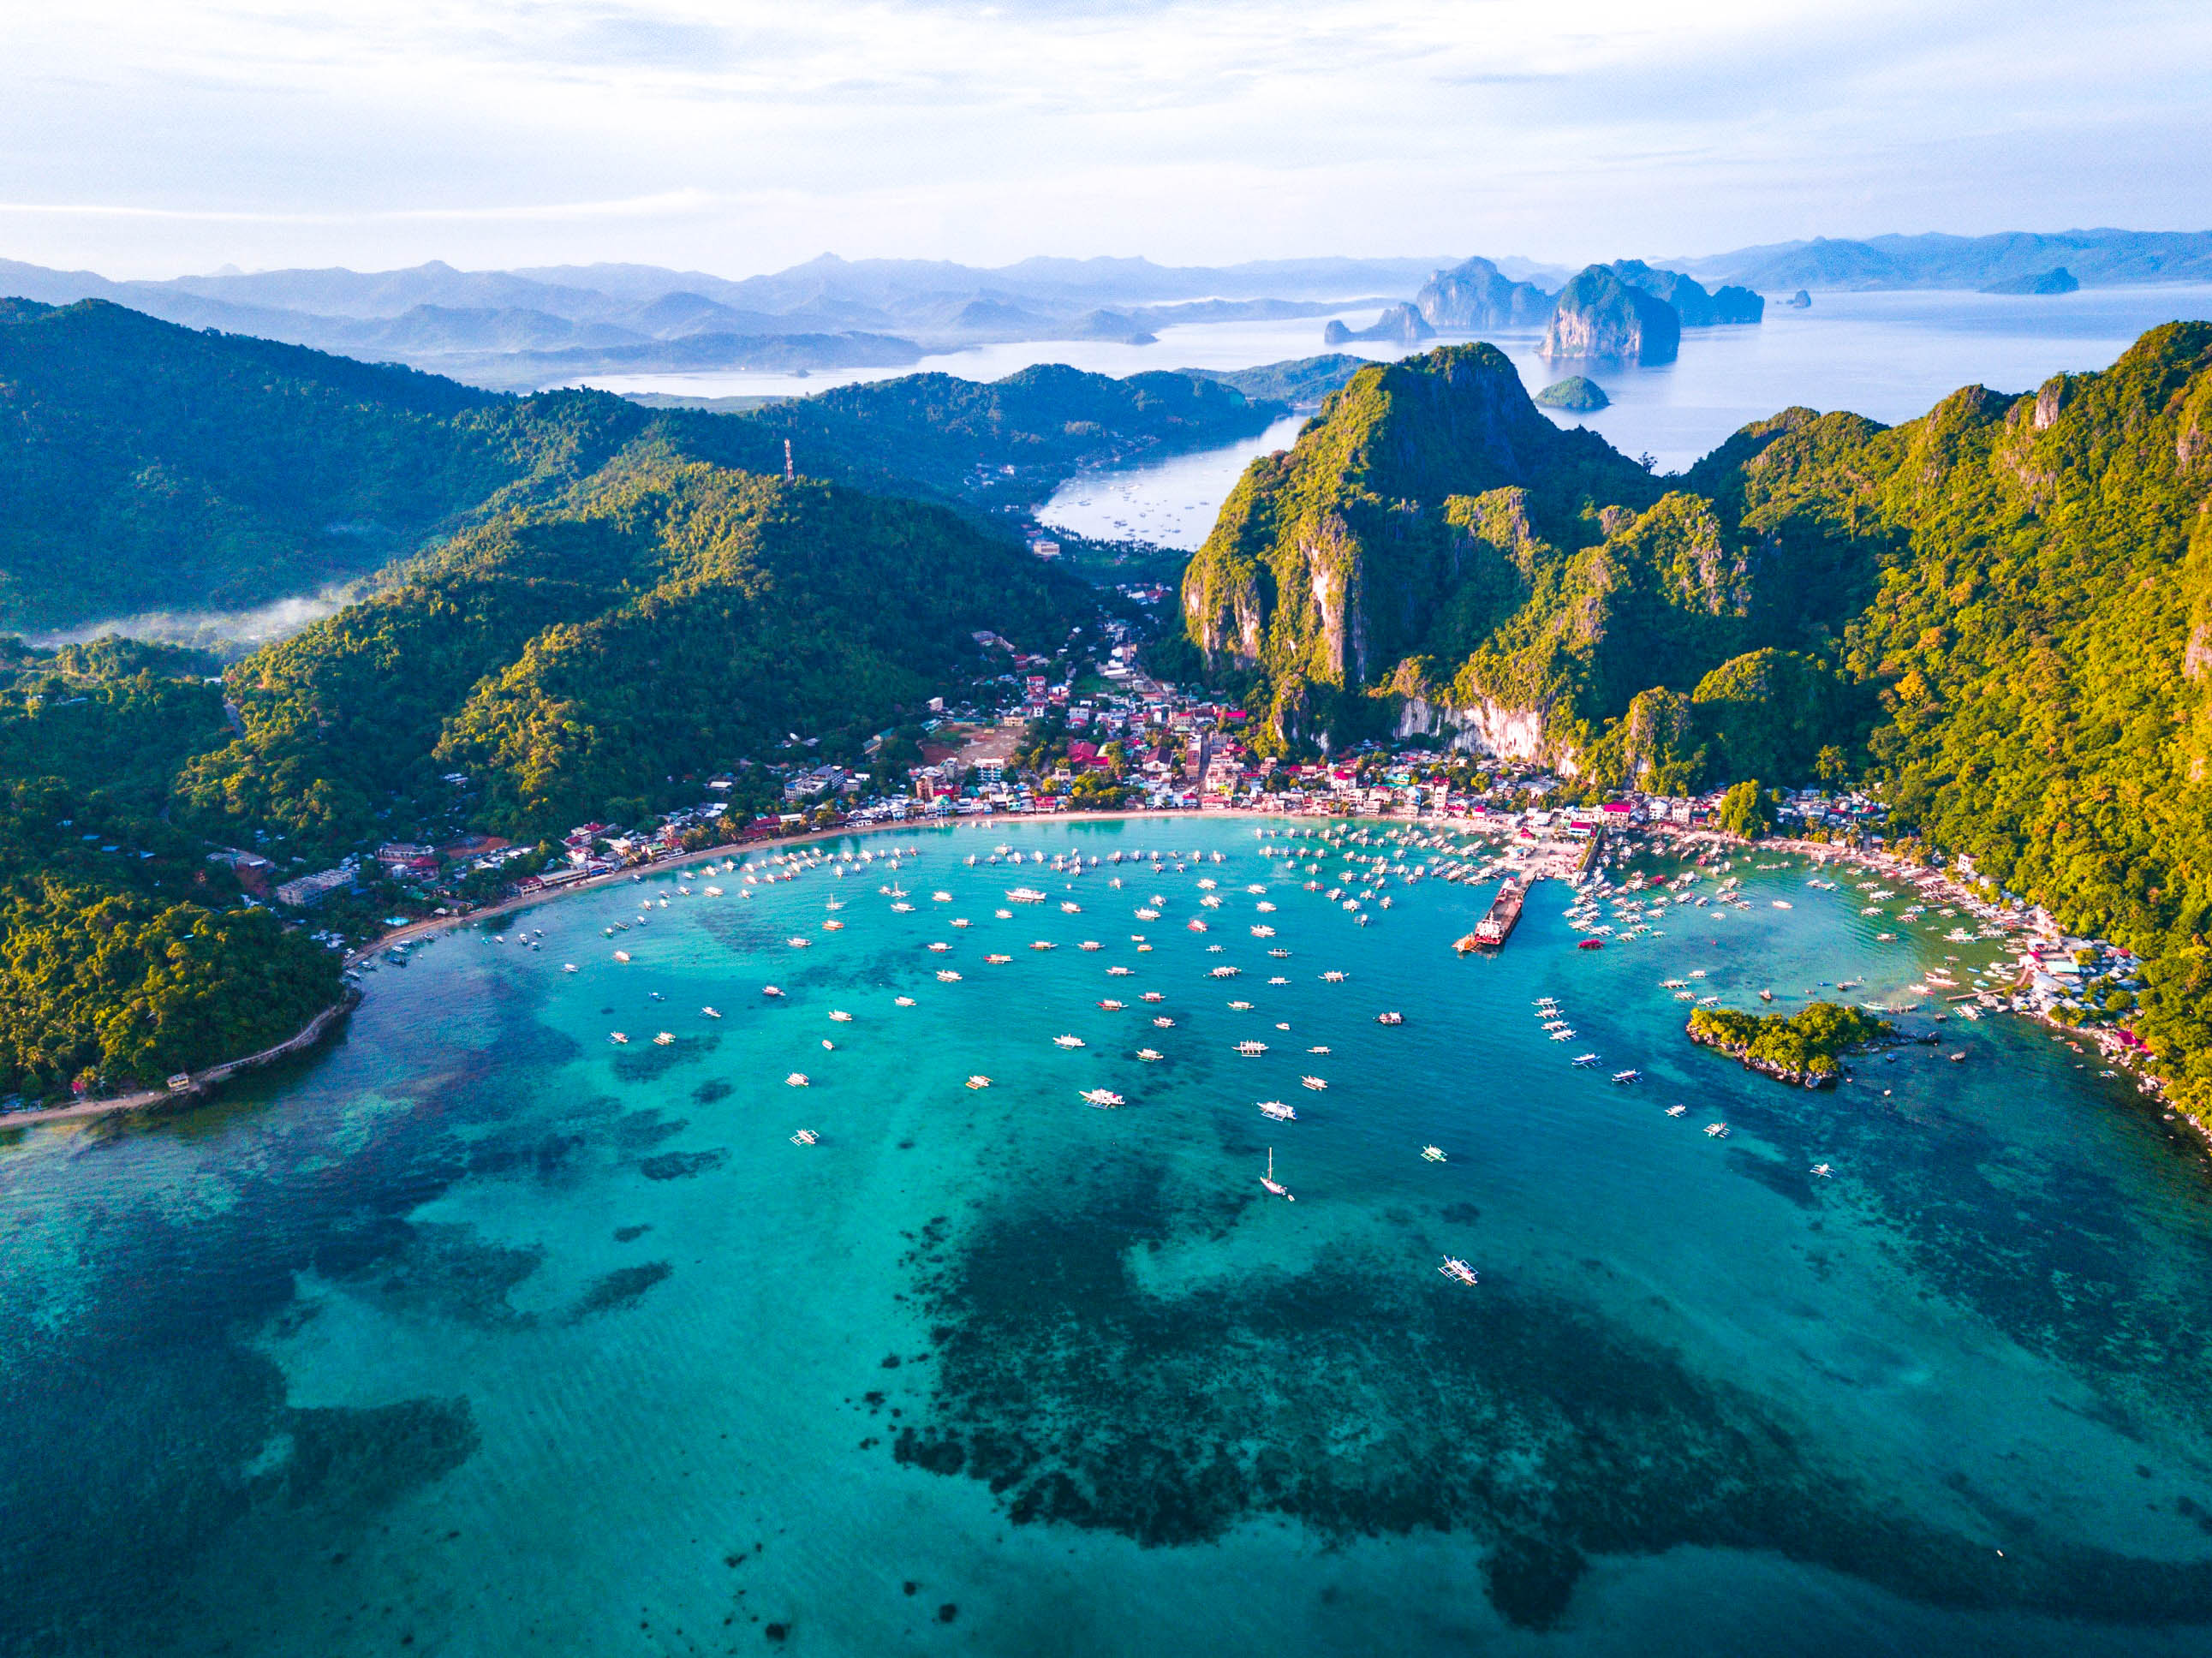 Aerial view of a town nestled between towering mountains and a sheltered bay filled with numerous outrigger boats in El Nido, Palawan, Philippines